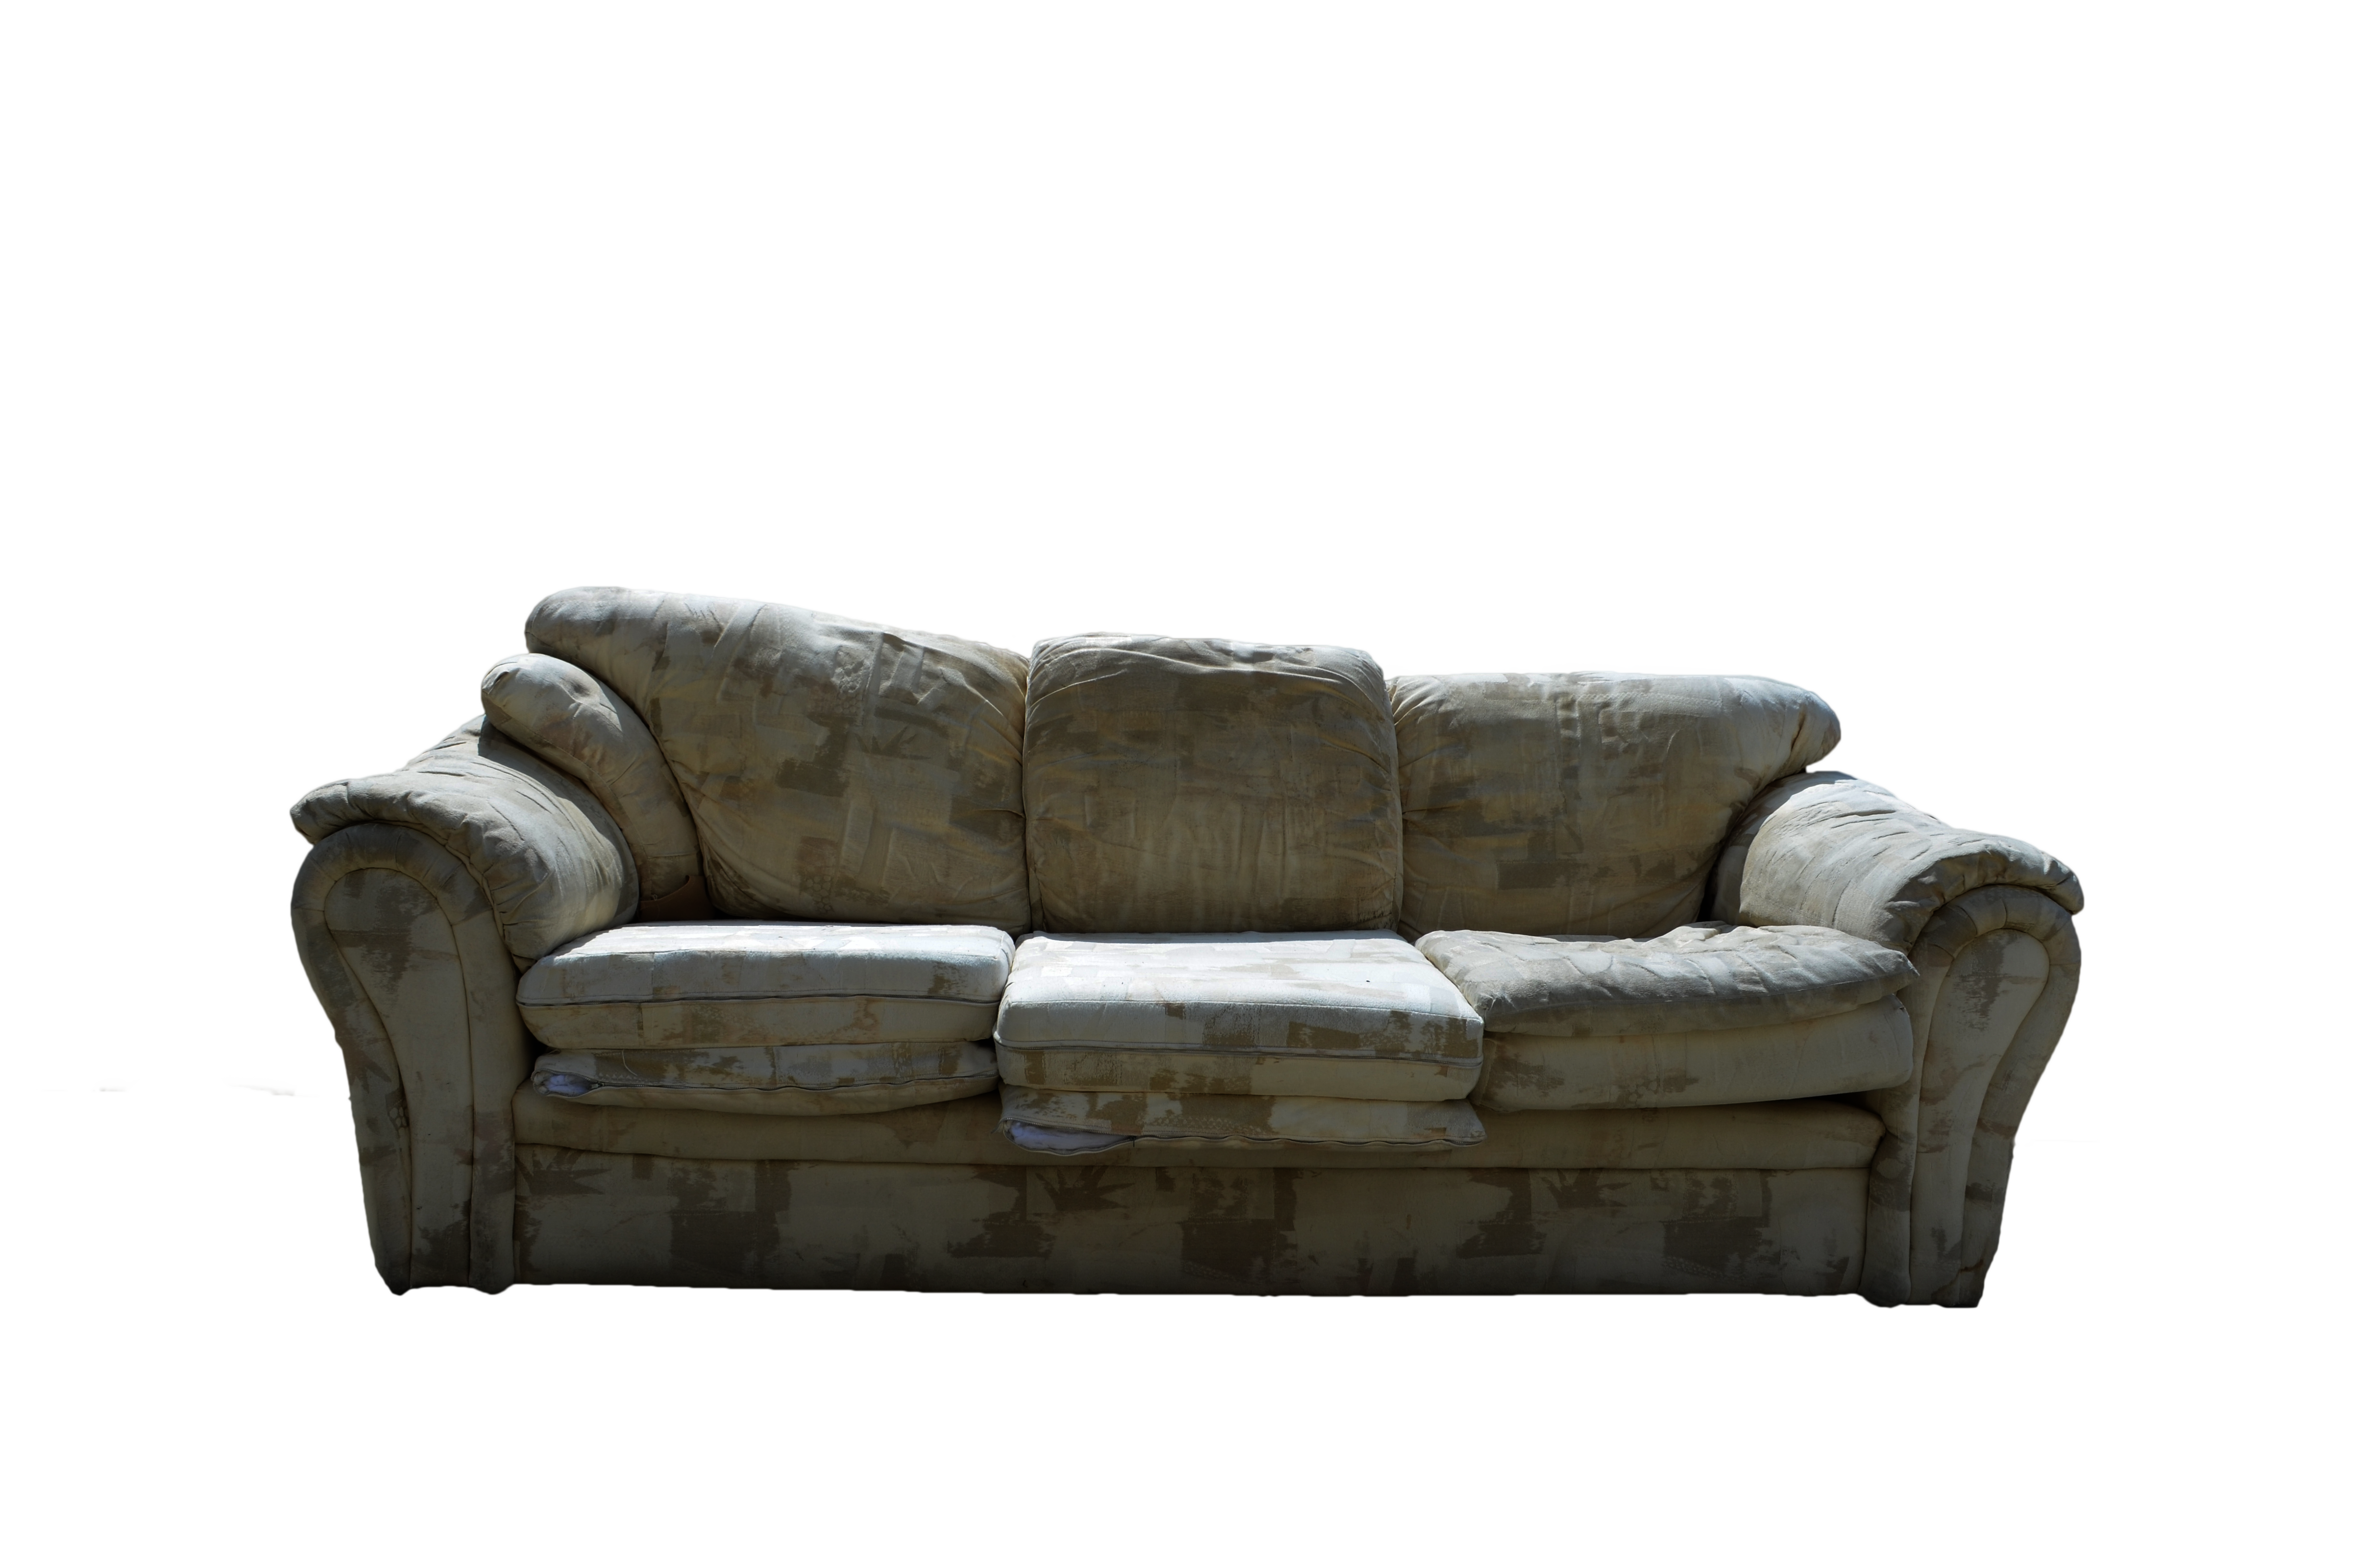 Images of sofa home. Couch clipart old couch